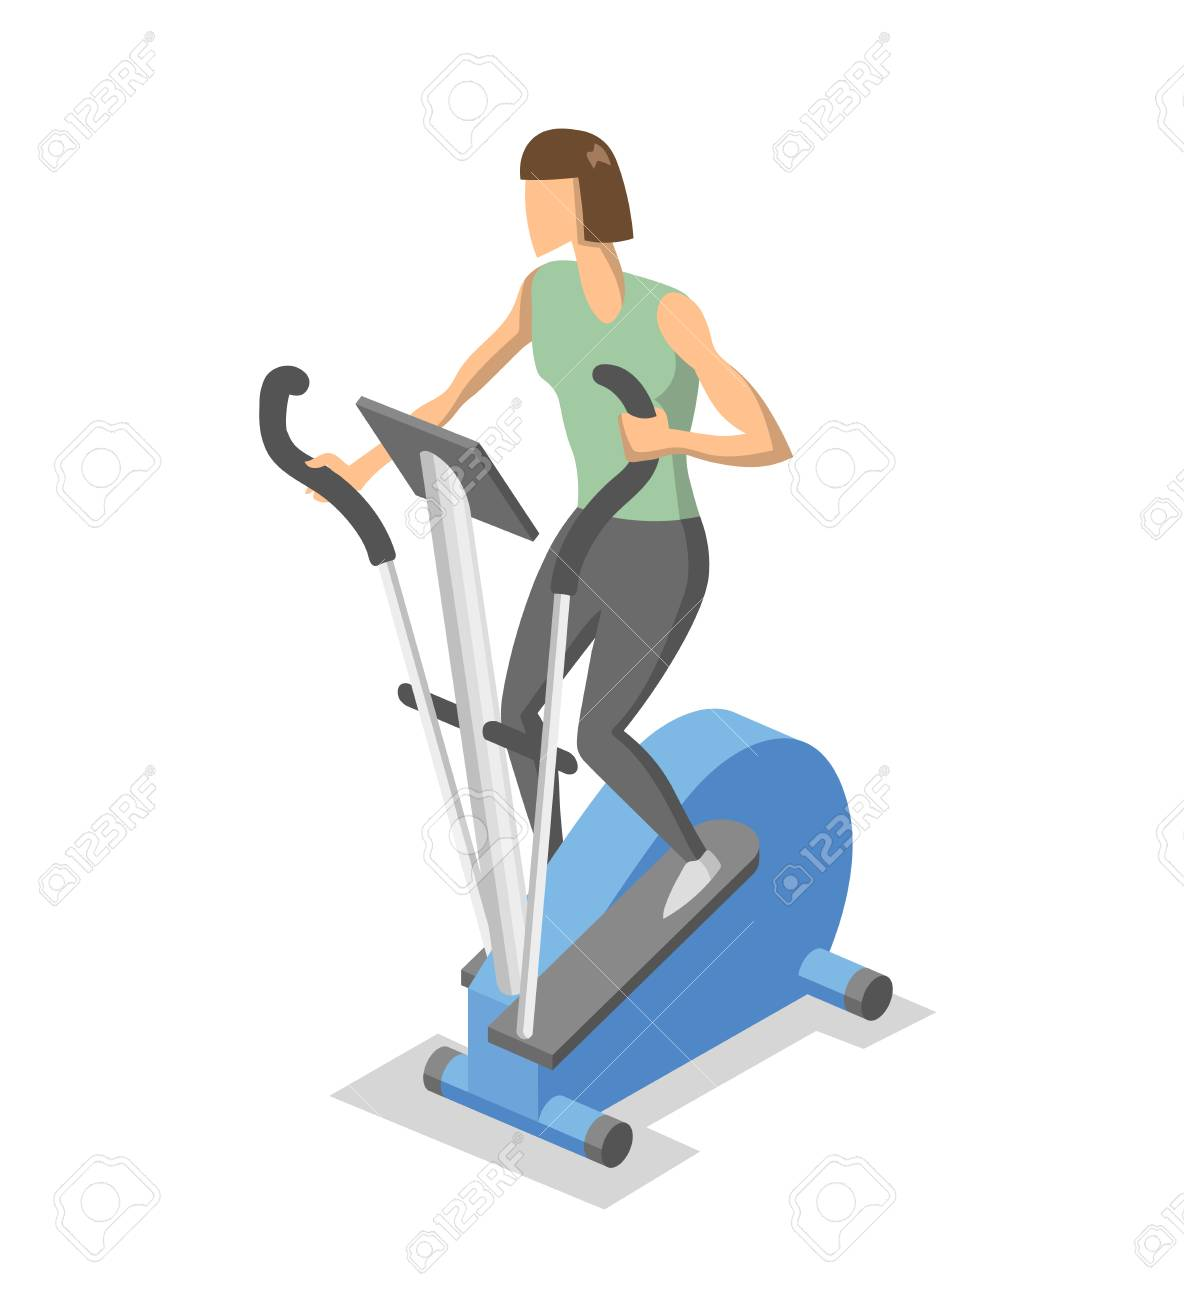 woman working out on